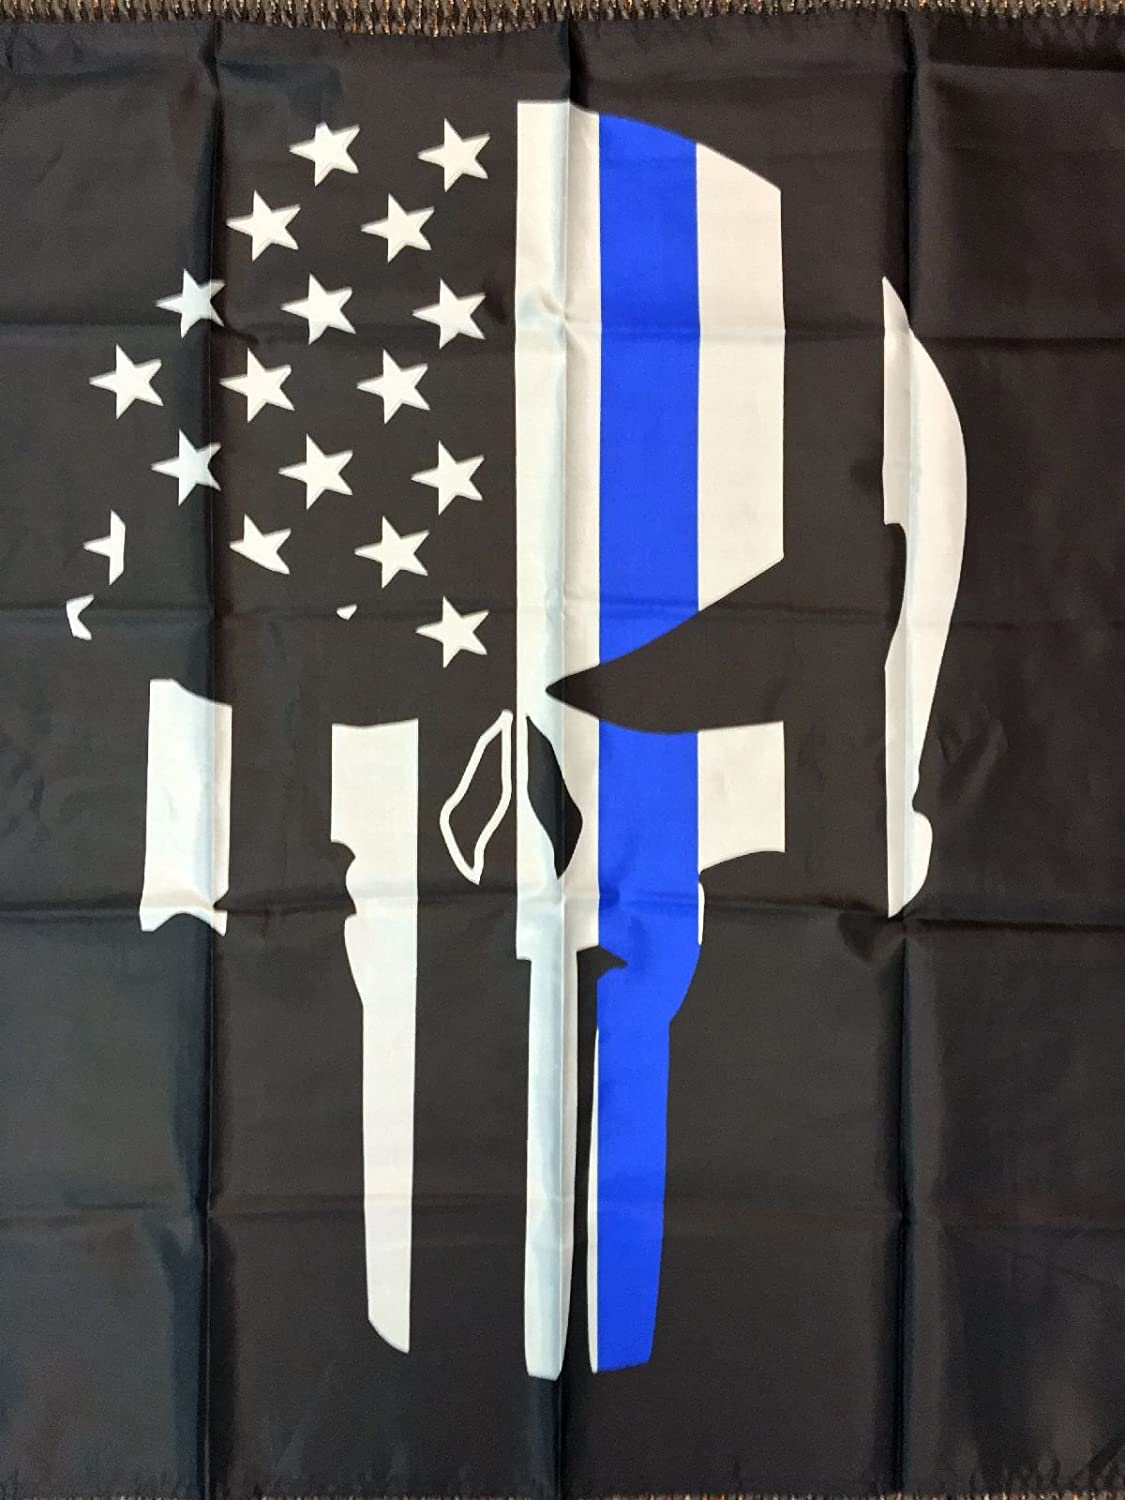 afcb736f892 Amazon.com   Ruffin 3x5 Blue Line Police Lives Matter Memorial American  Punisher Skull Flag USA New   Garden   Outdoor